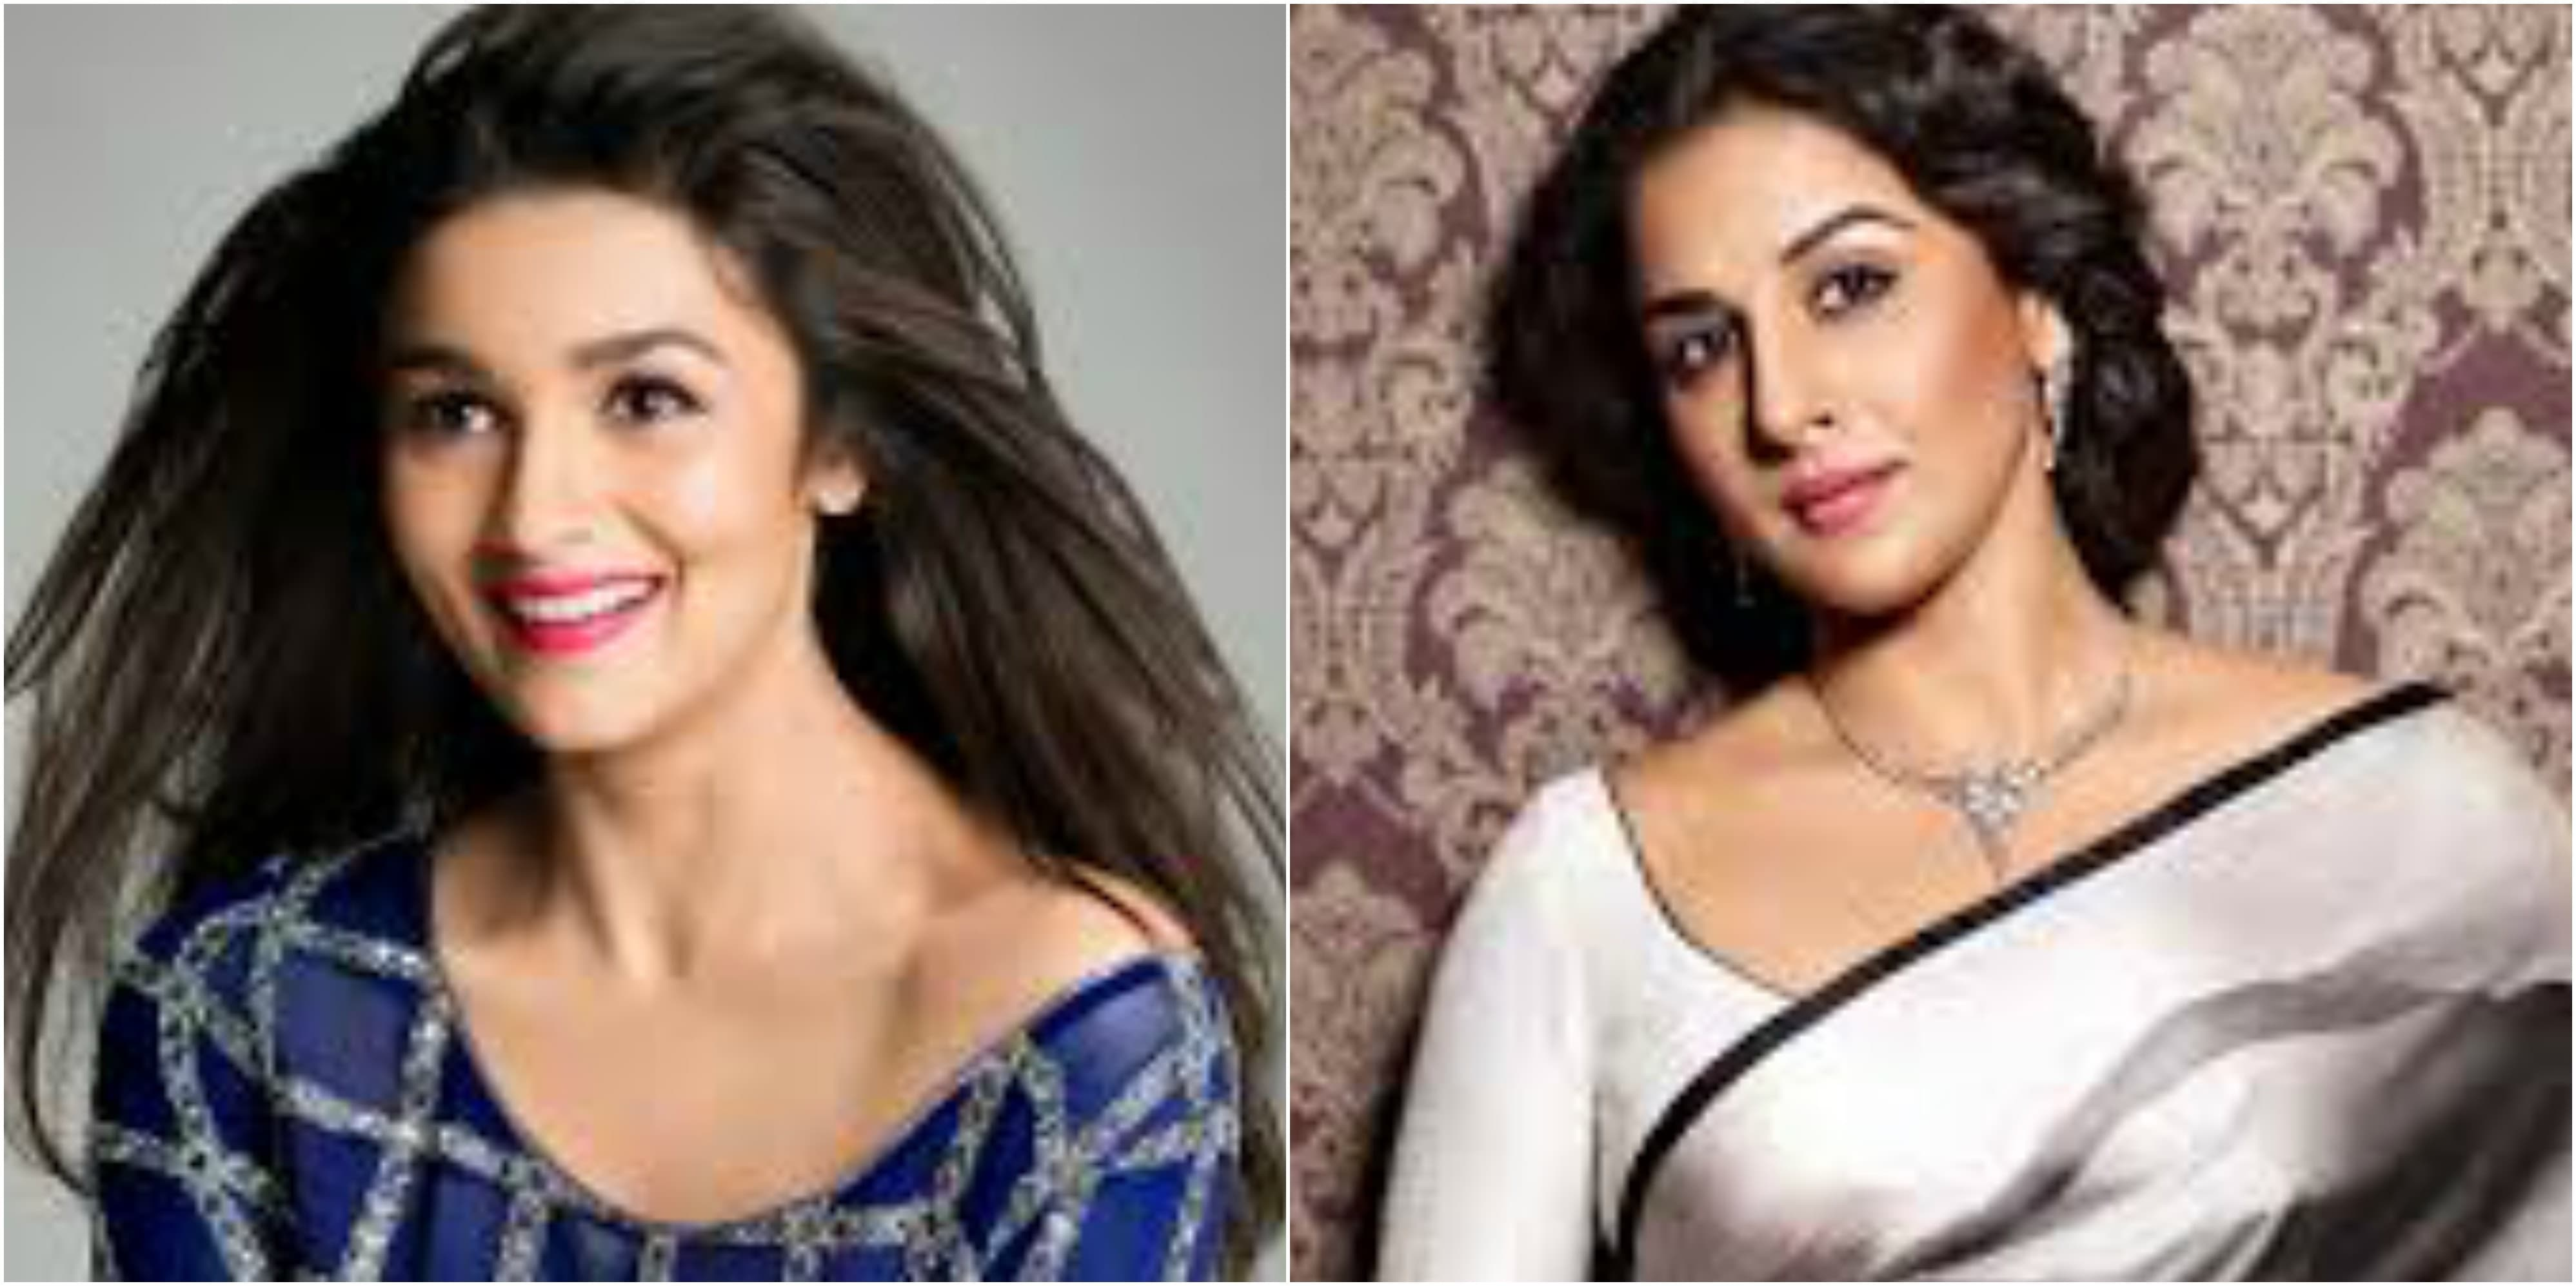 Alia Bhatt and Vidya Balan have been nominated for Best Actor Female category.